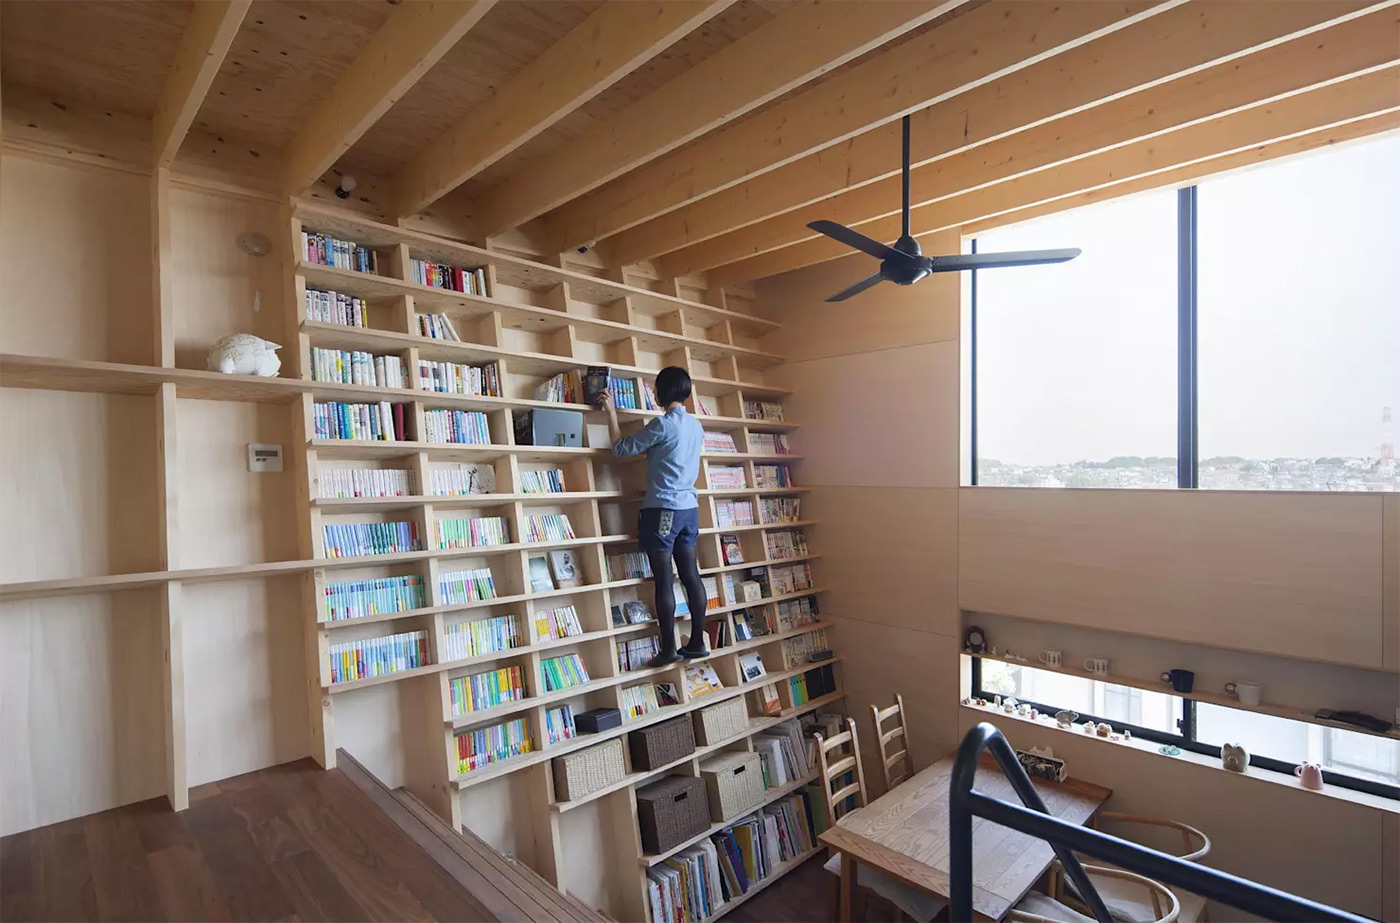 Pretty Any Though Accessing Shelves Can Be A A Japanese Home Designed Around A Climbable To Ceiling Bookshelves Library To Ceiling Bookshelves Bookshelves Are Fireplace Can Act As A Focalpoint houzz-03 Floor To Ceiling Bookshelves